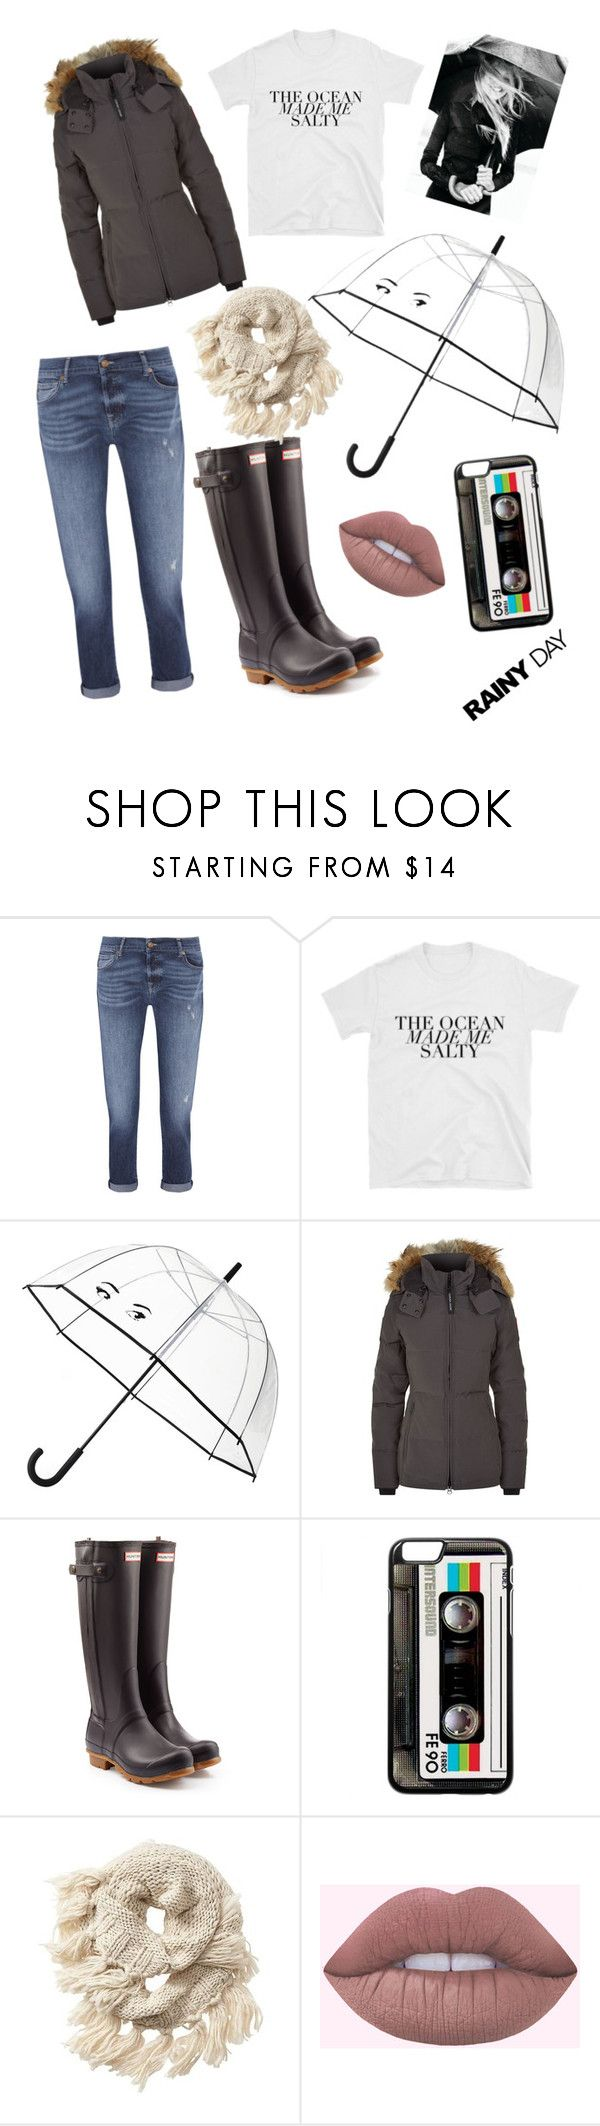 """""""Rainy dayz"""" by adrianaestrada835 ❤ liked on Polyvore featuring 7 For All Mankind, Kate Spade, Canada Goose, Hunter and Athleta"""